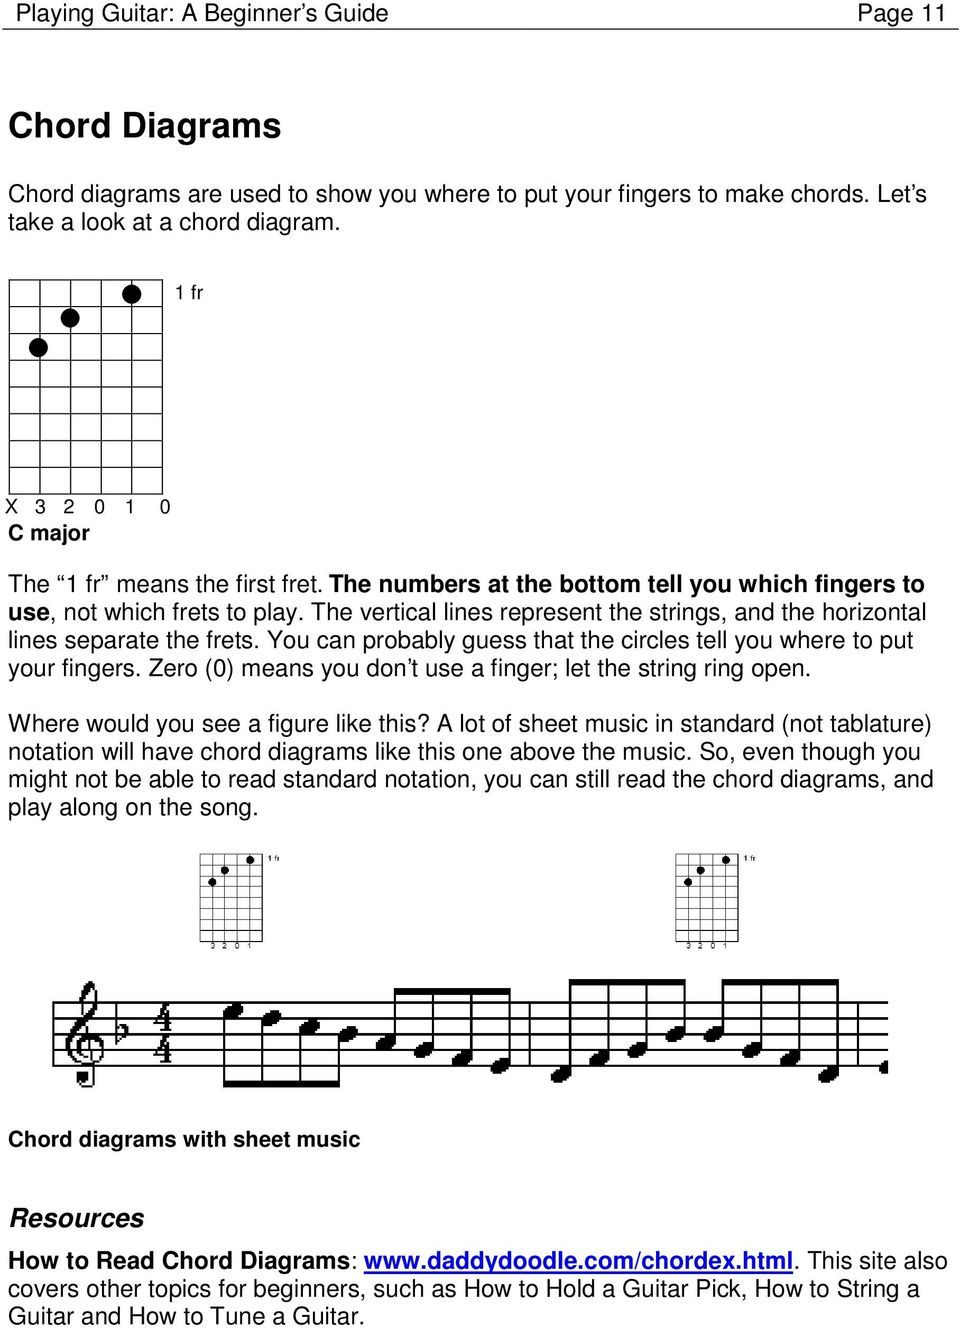 Playing Guitar A Beginner S Guide By Darrin Koltow Copyright 2002 About Chord Diagrams And How To Read Them The Vertical Lines Represent Strings Horizontal Separate Frets You